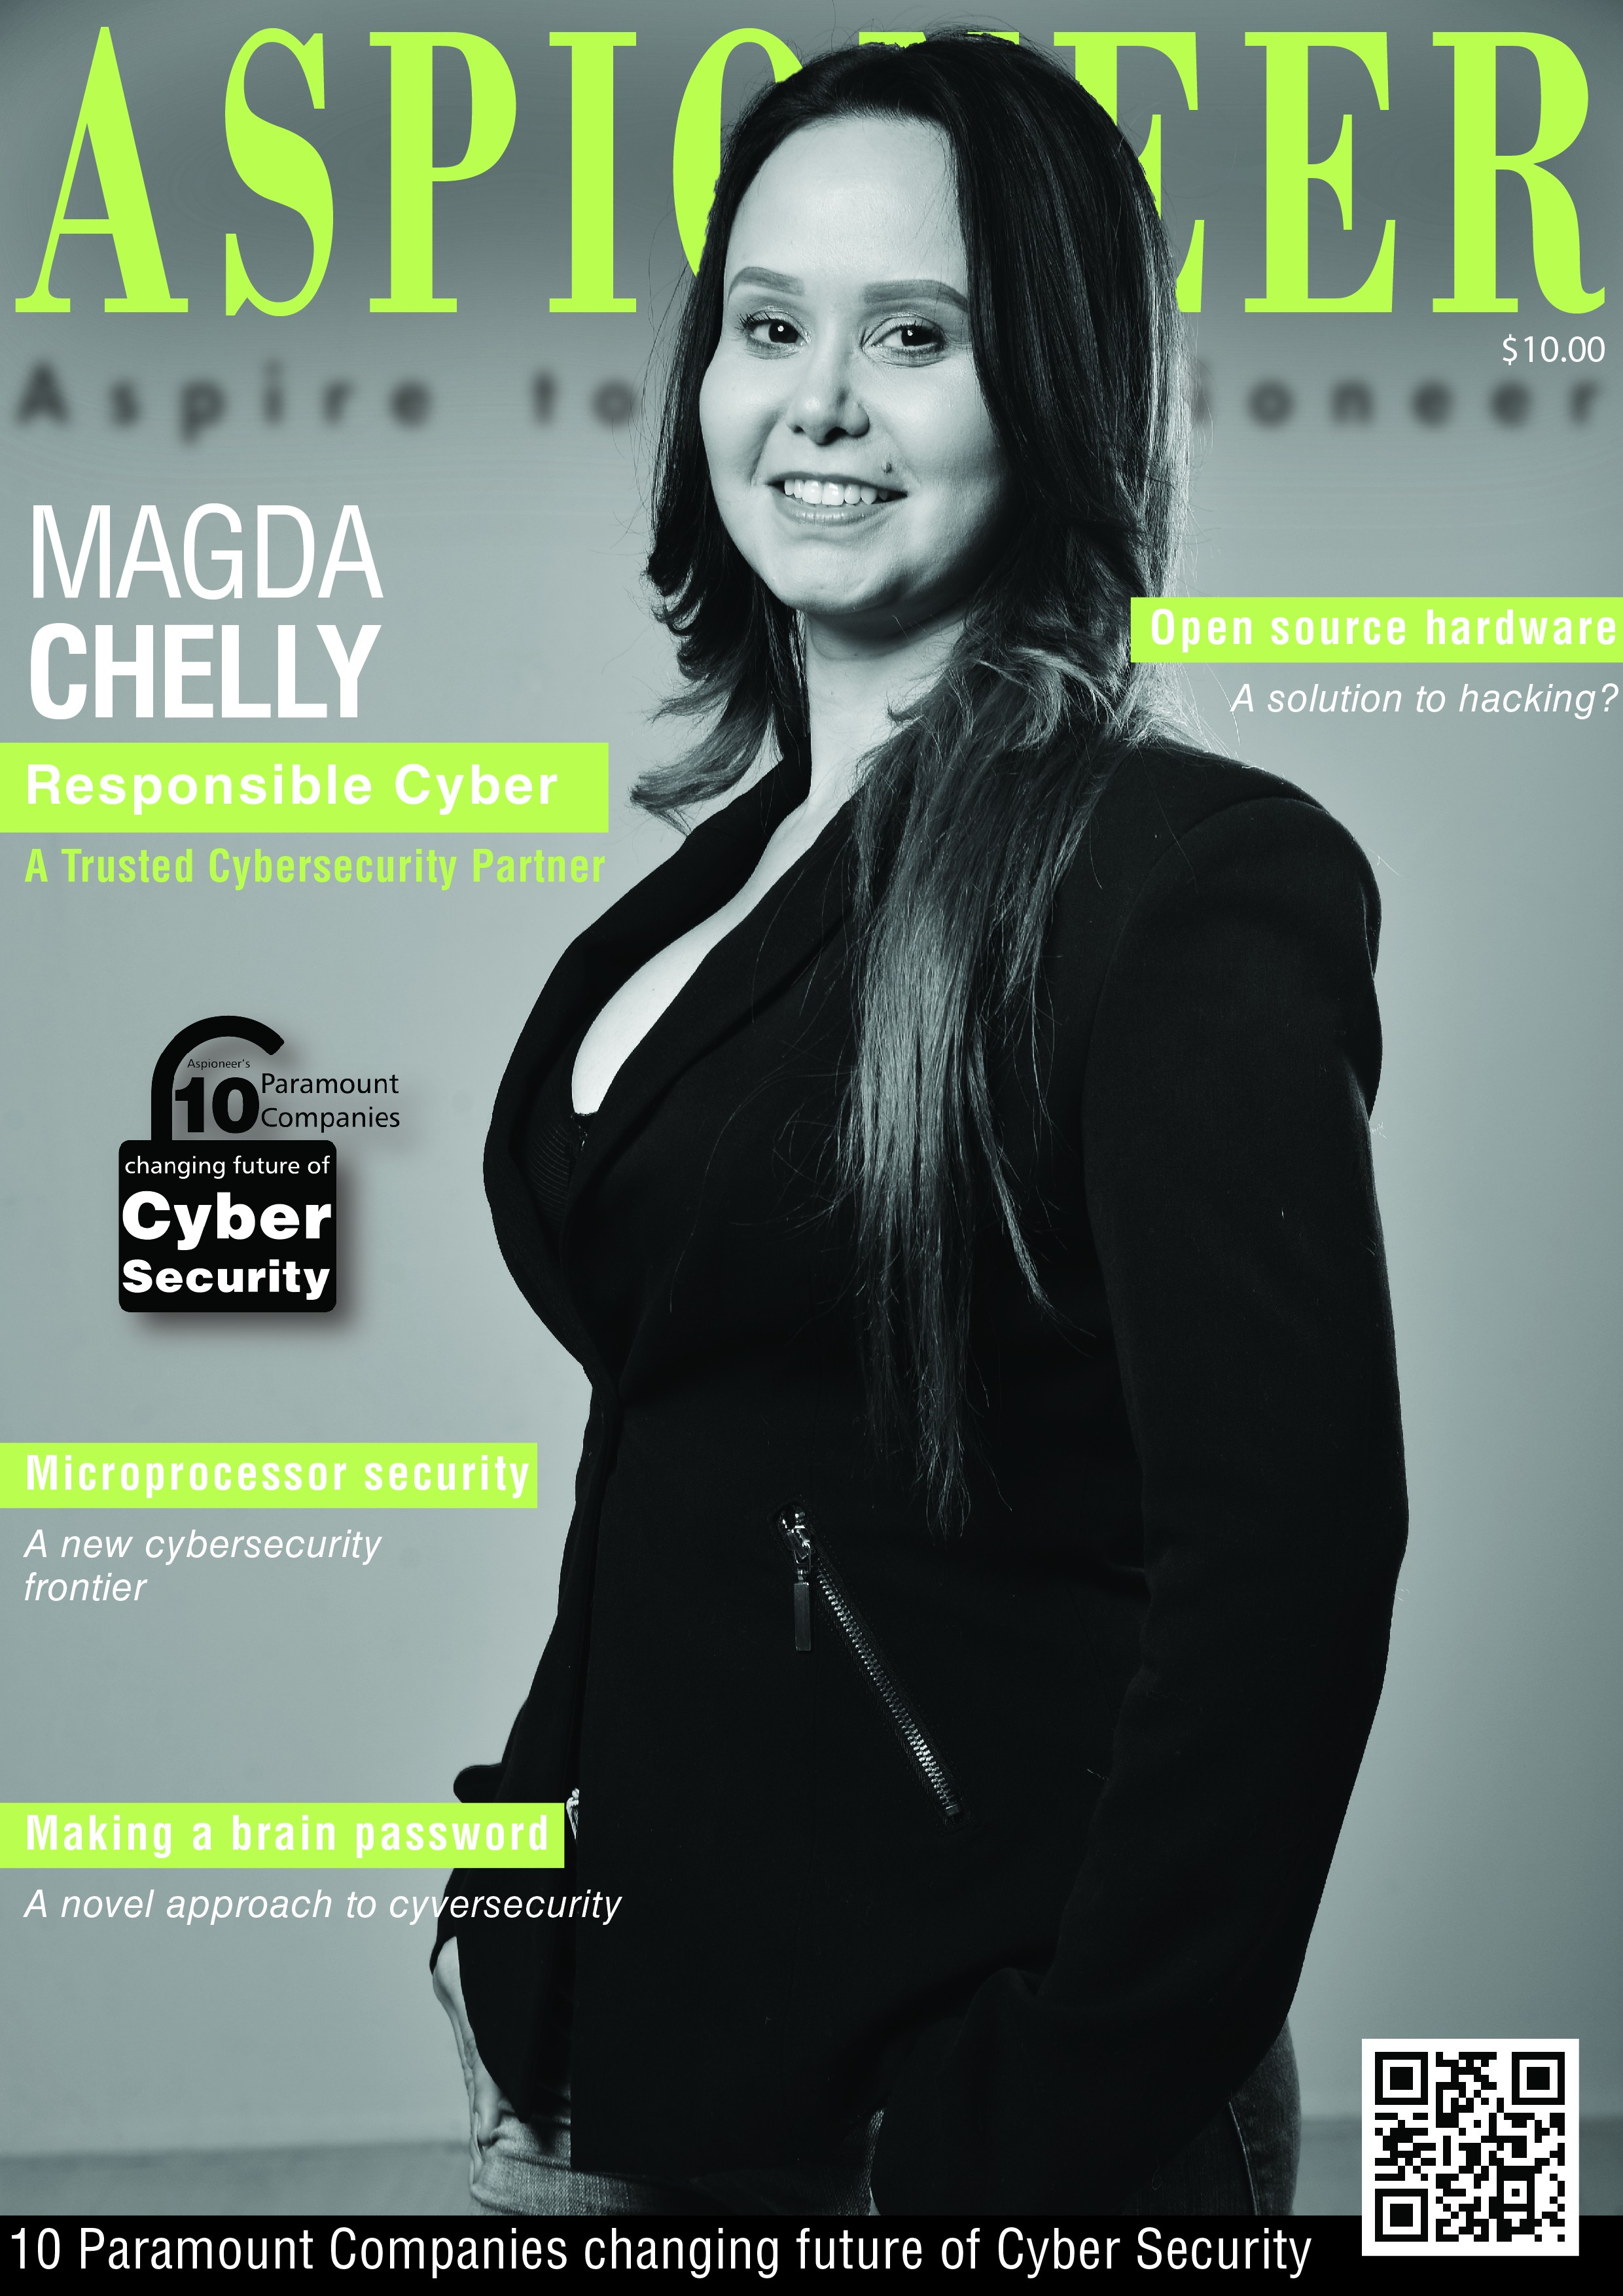 Magazine cover with a woman in black and white, green letterring